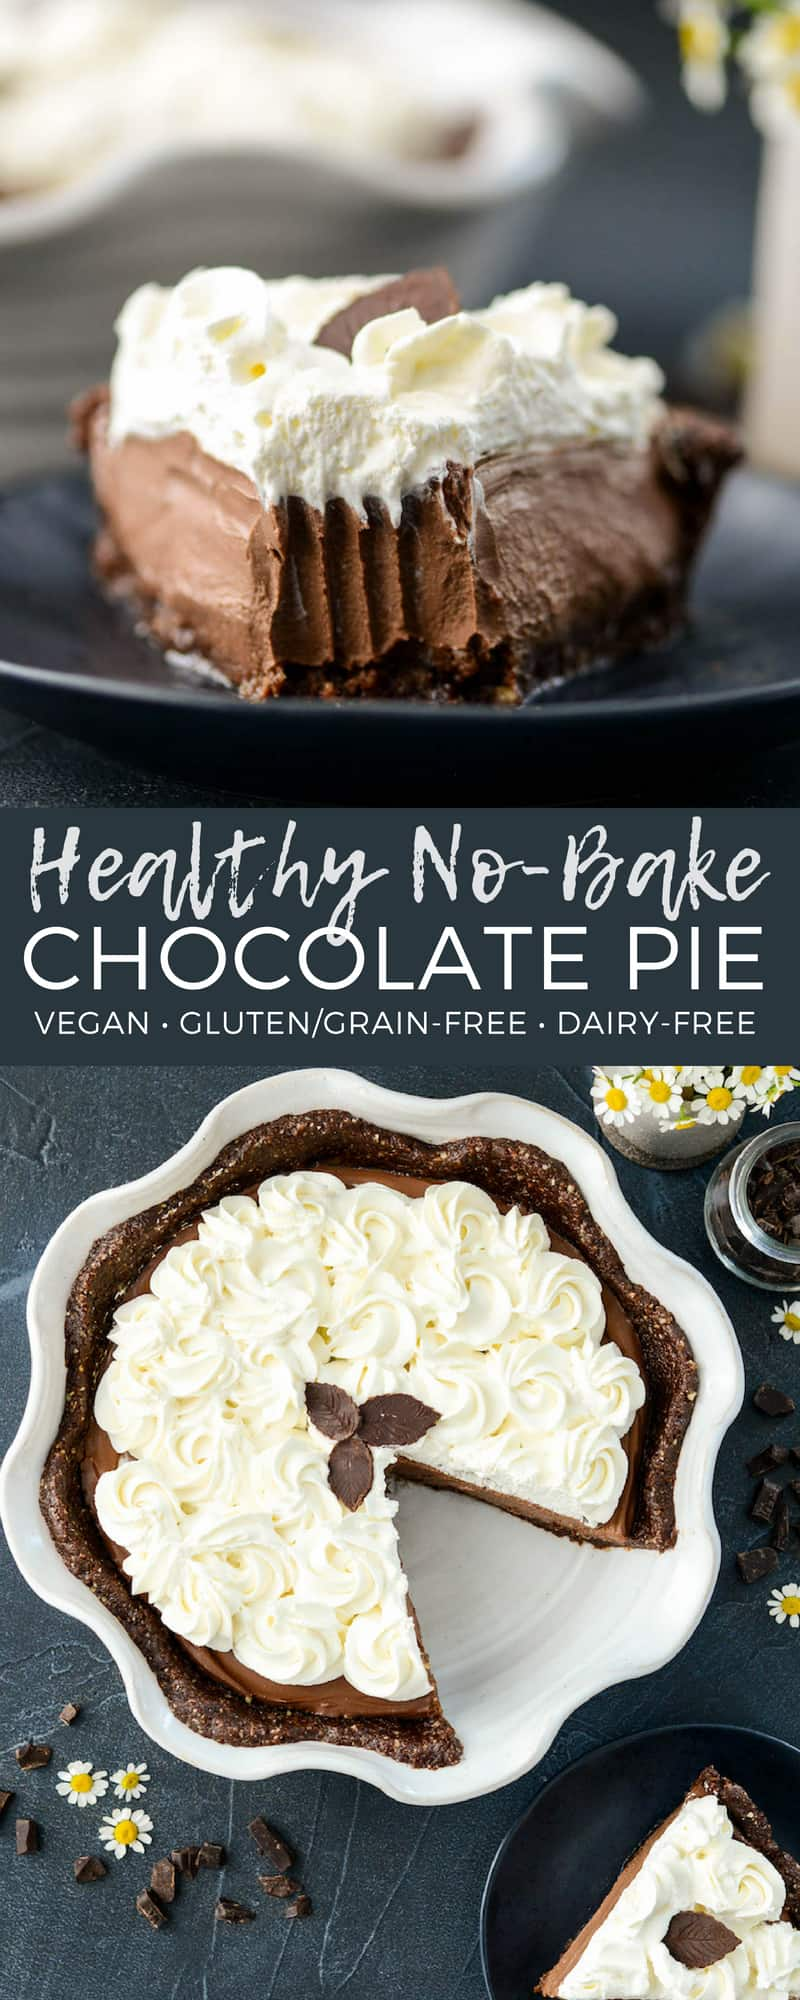 This no-bake Healthy Vegan Chocolate Pie recipe is lusciously creamy and intensely chocolatey! It's like French Silk Pie only better for you! It's gluten-free, dairy-free, and vegan with a refined sugar free option! The perfect dessert for Thanksgiving!  #vegan #glutenfree #grainfree #chocolate #pie #vitamix #nobake #healthy #recipe #dessert